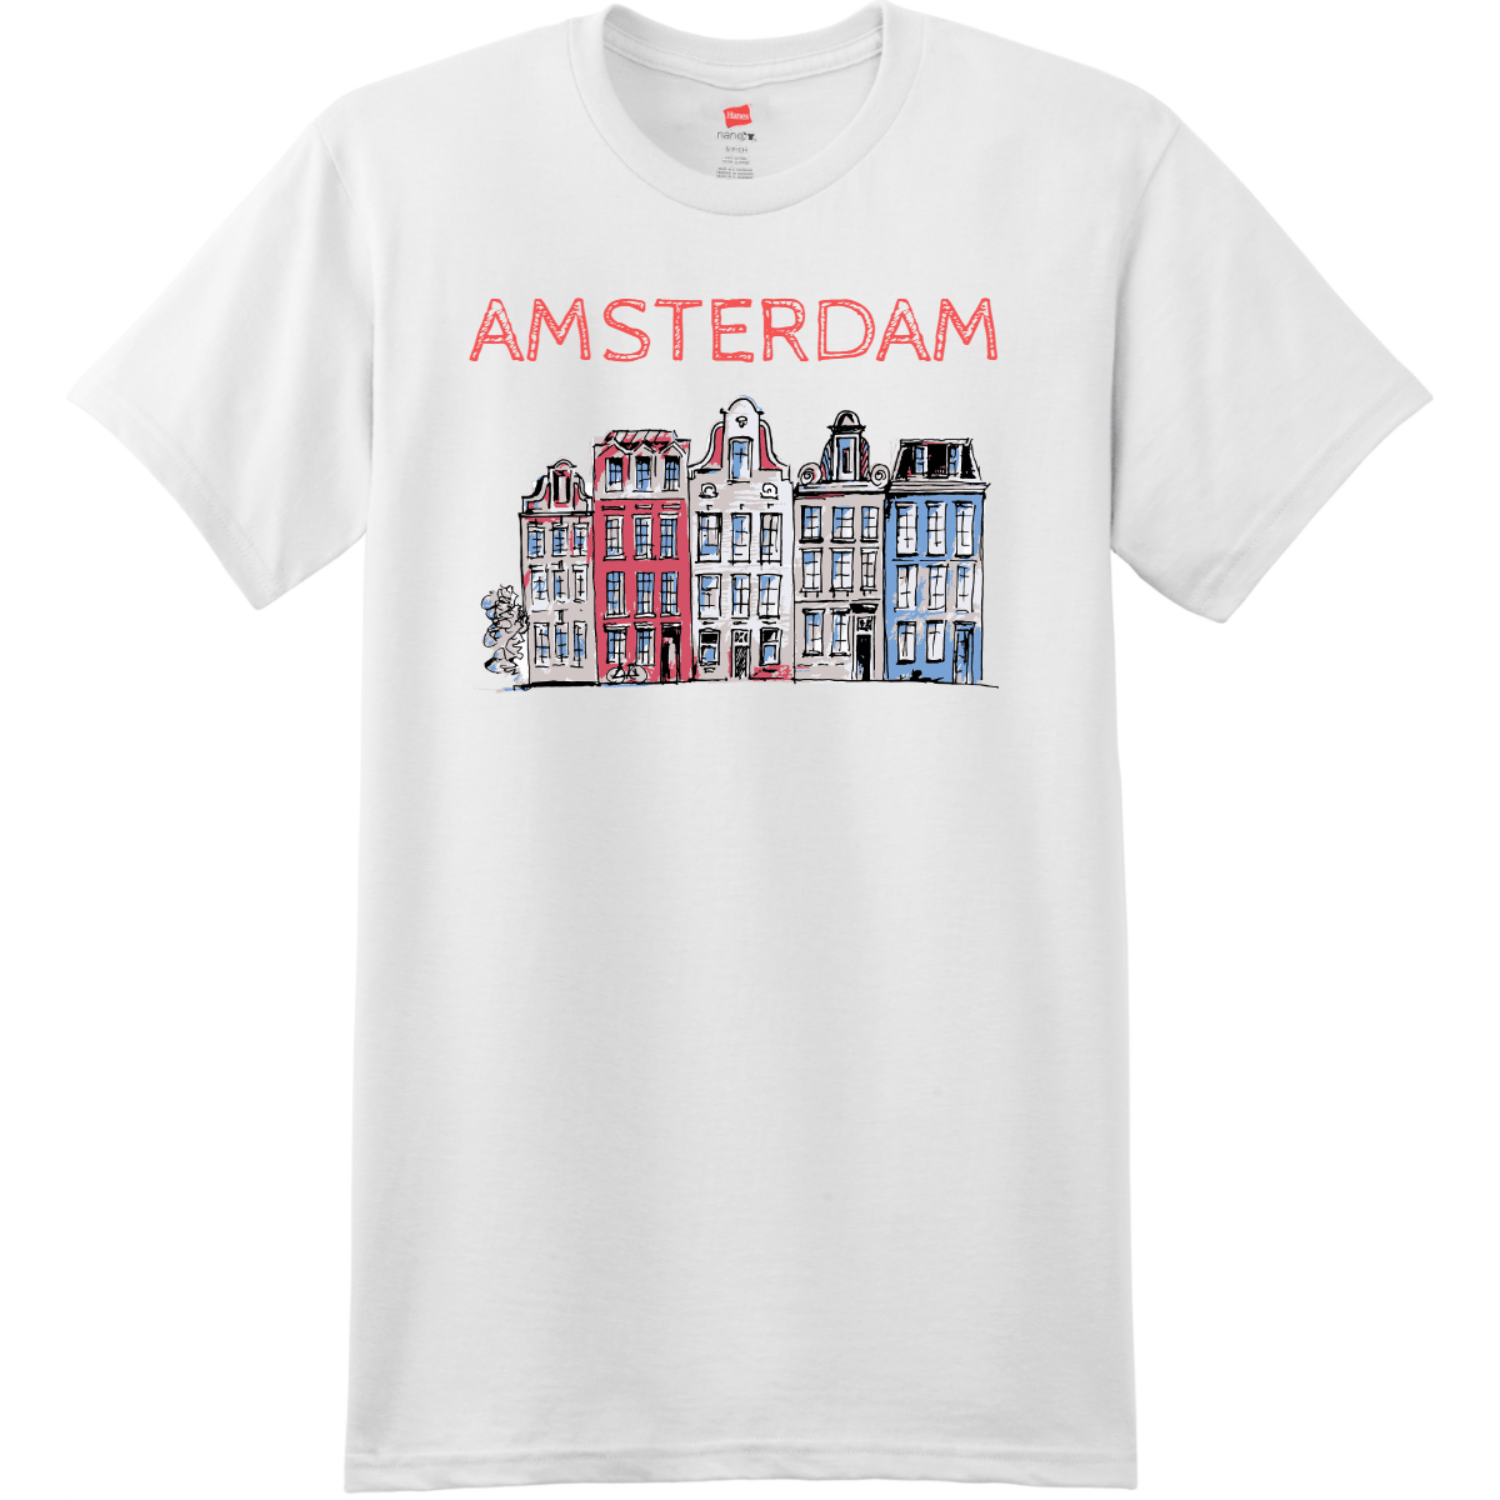 Amsterdam Holland Leaning Houses T Shirt White Hanes Nano 4980 Ringspun Cotton T Shirt